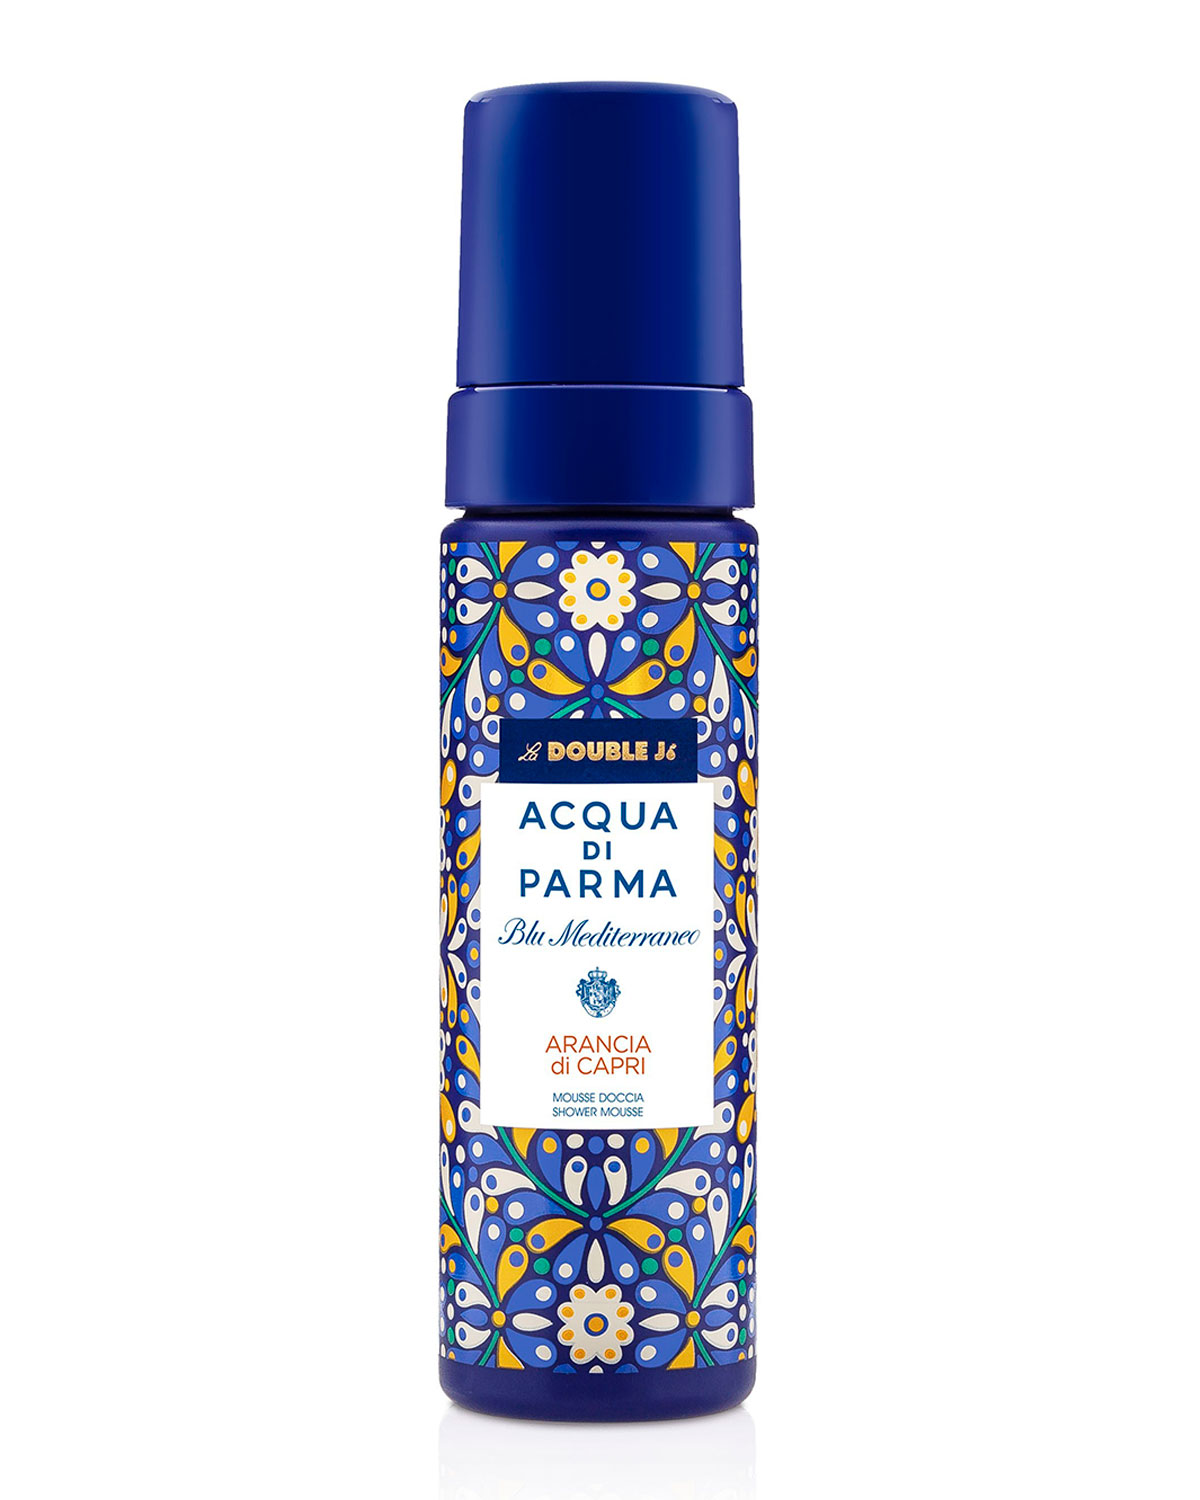 Acqua di Parma 5 oz. Arancia di Capri Shower Mousse